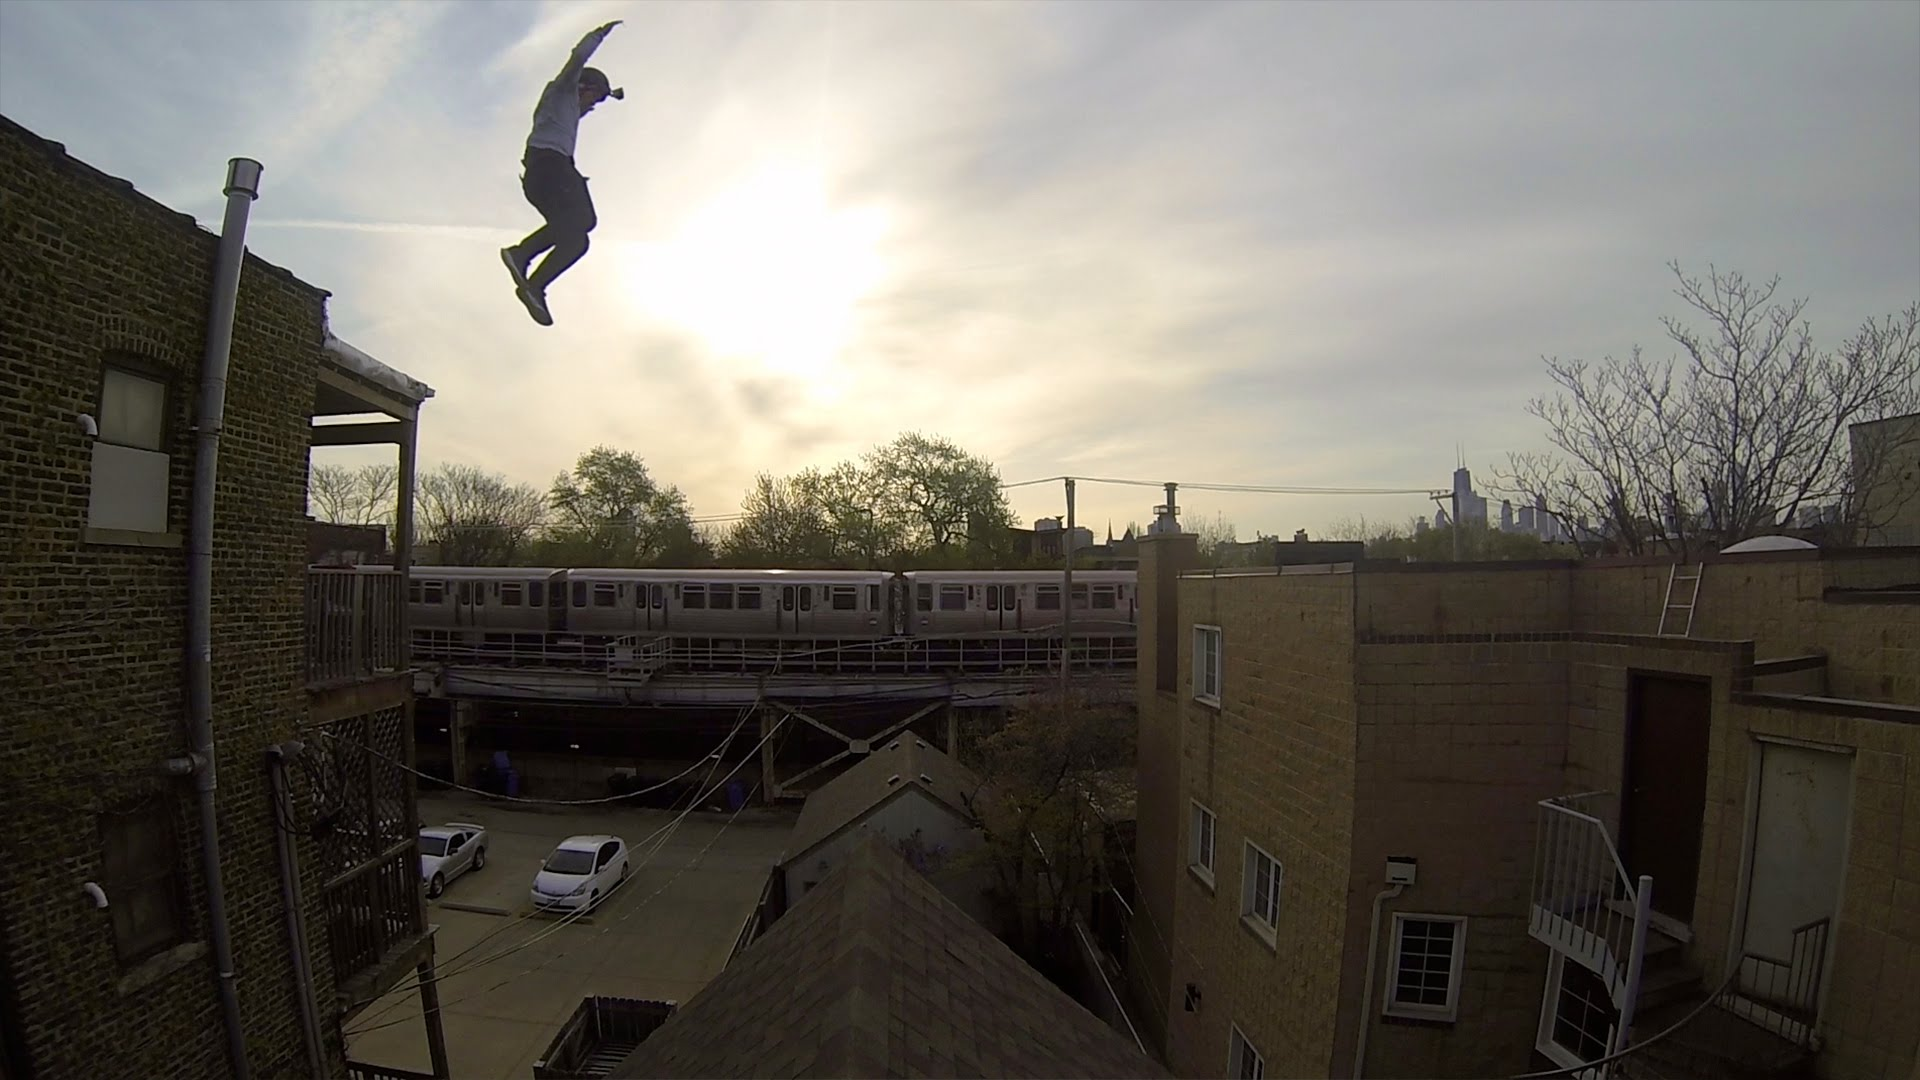 First Person Gopro Video Of A Stuntman Jumping Onto And